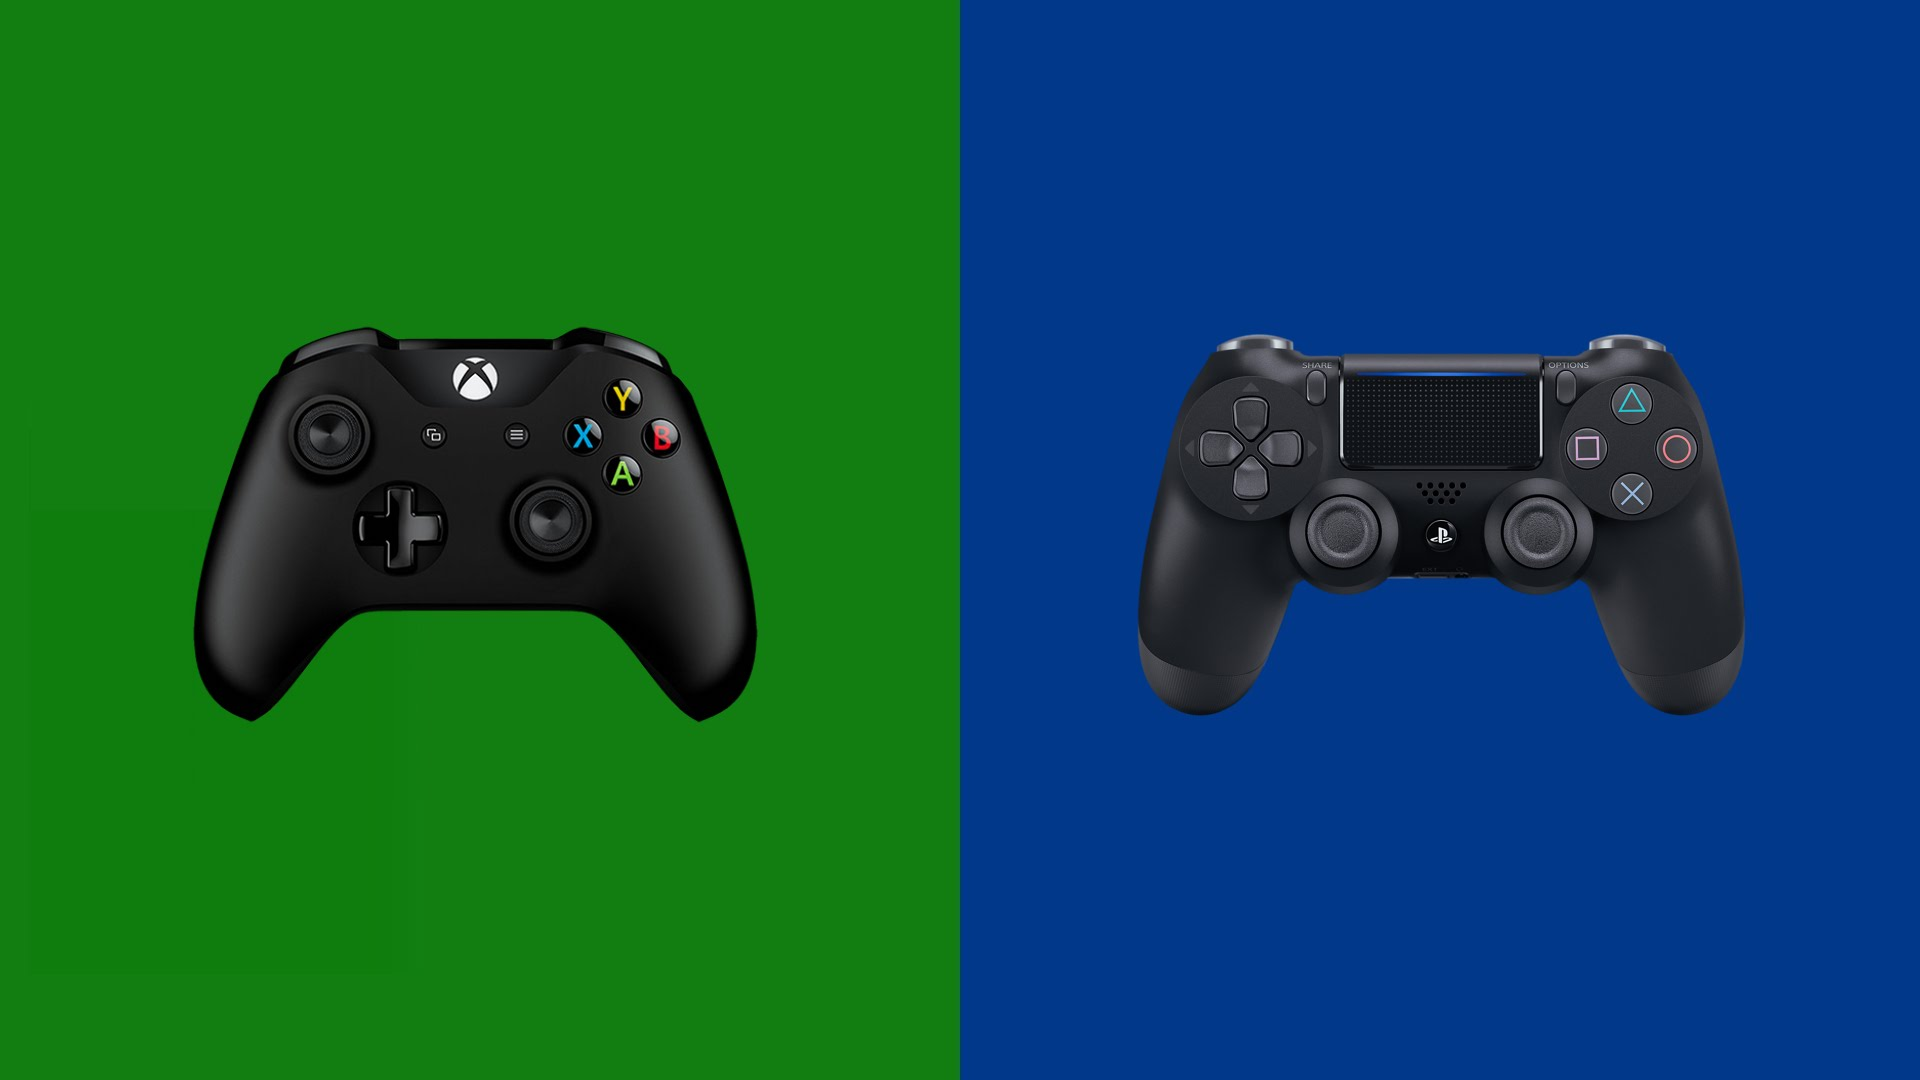 Ps5 vs Xbox Series X- Which Console is Better?